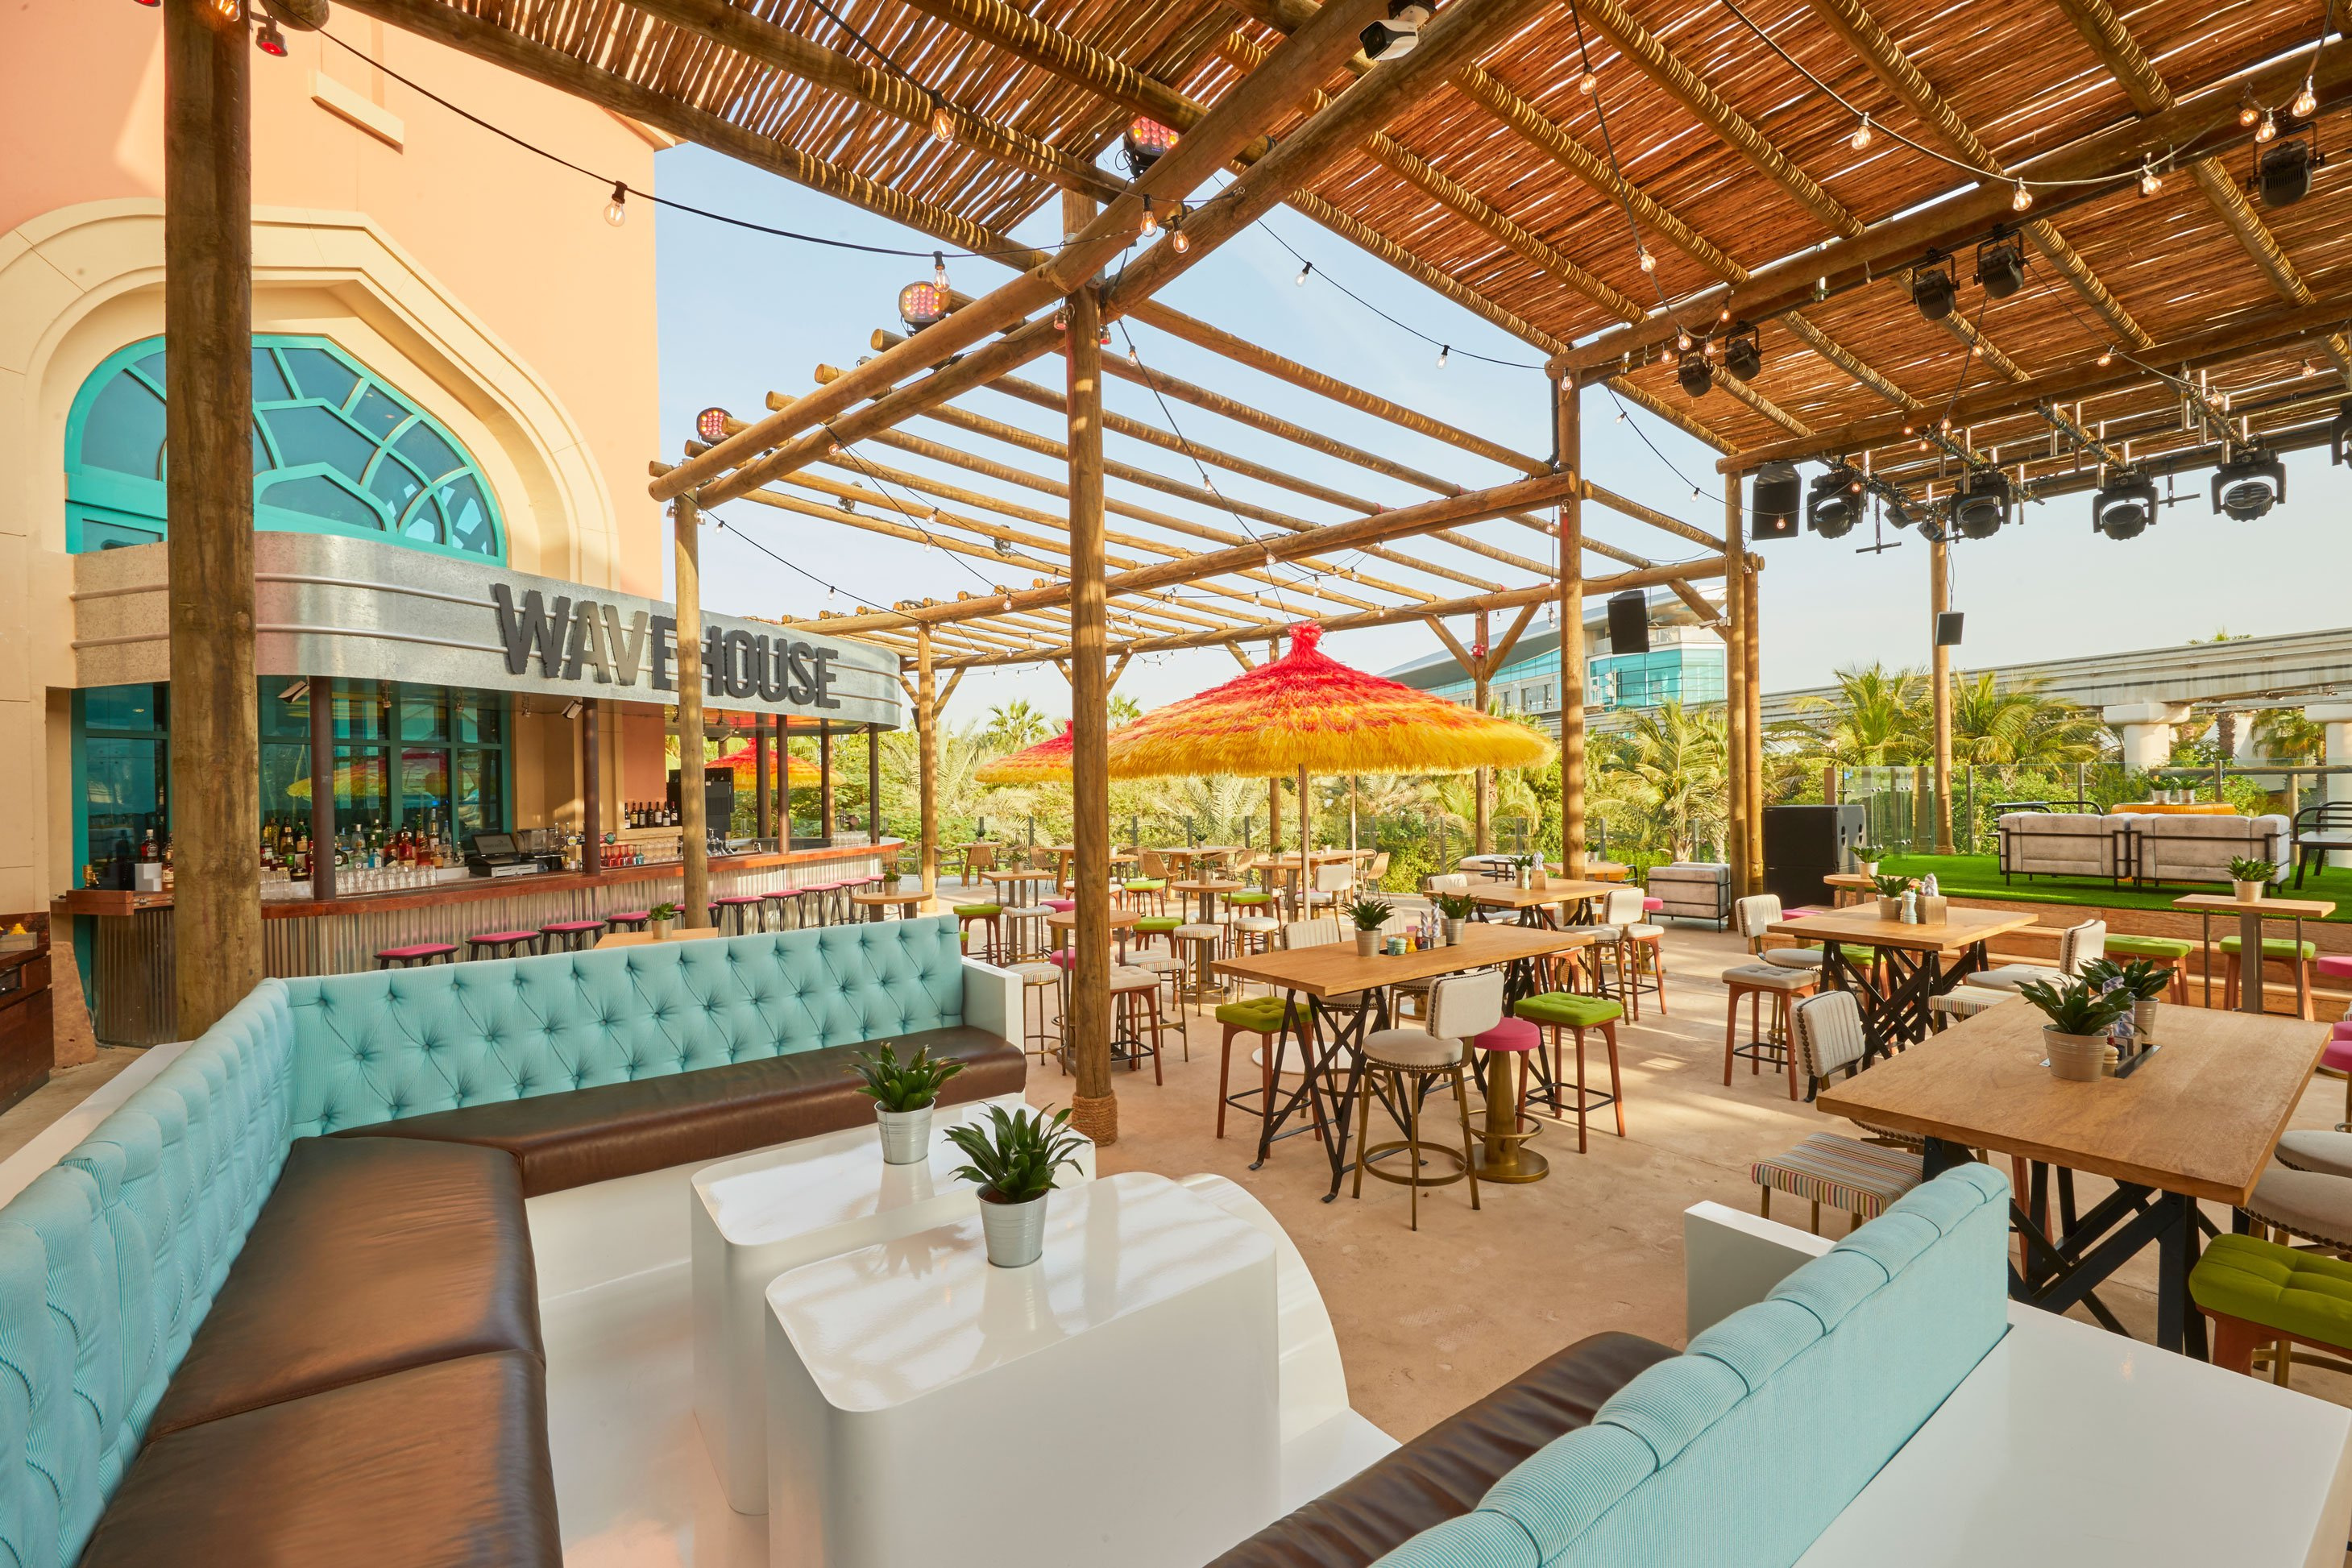 Wavehouse is one of four new restaurants at the resort.